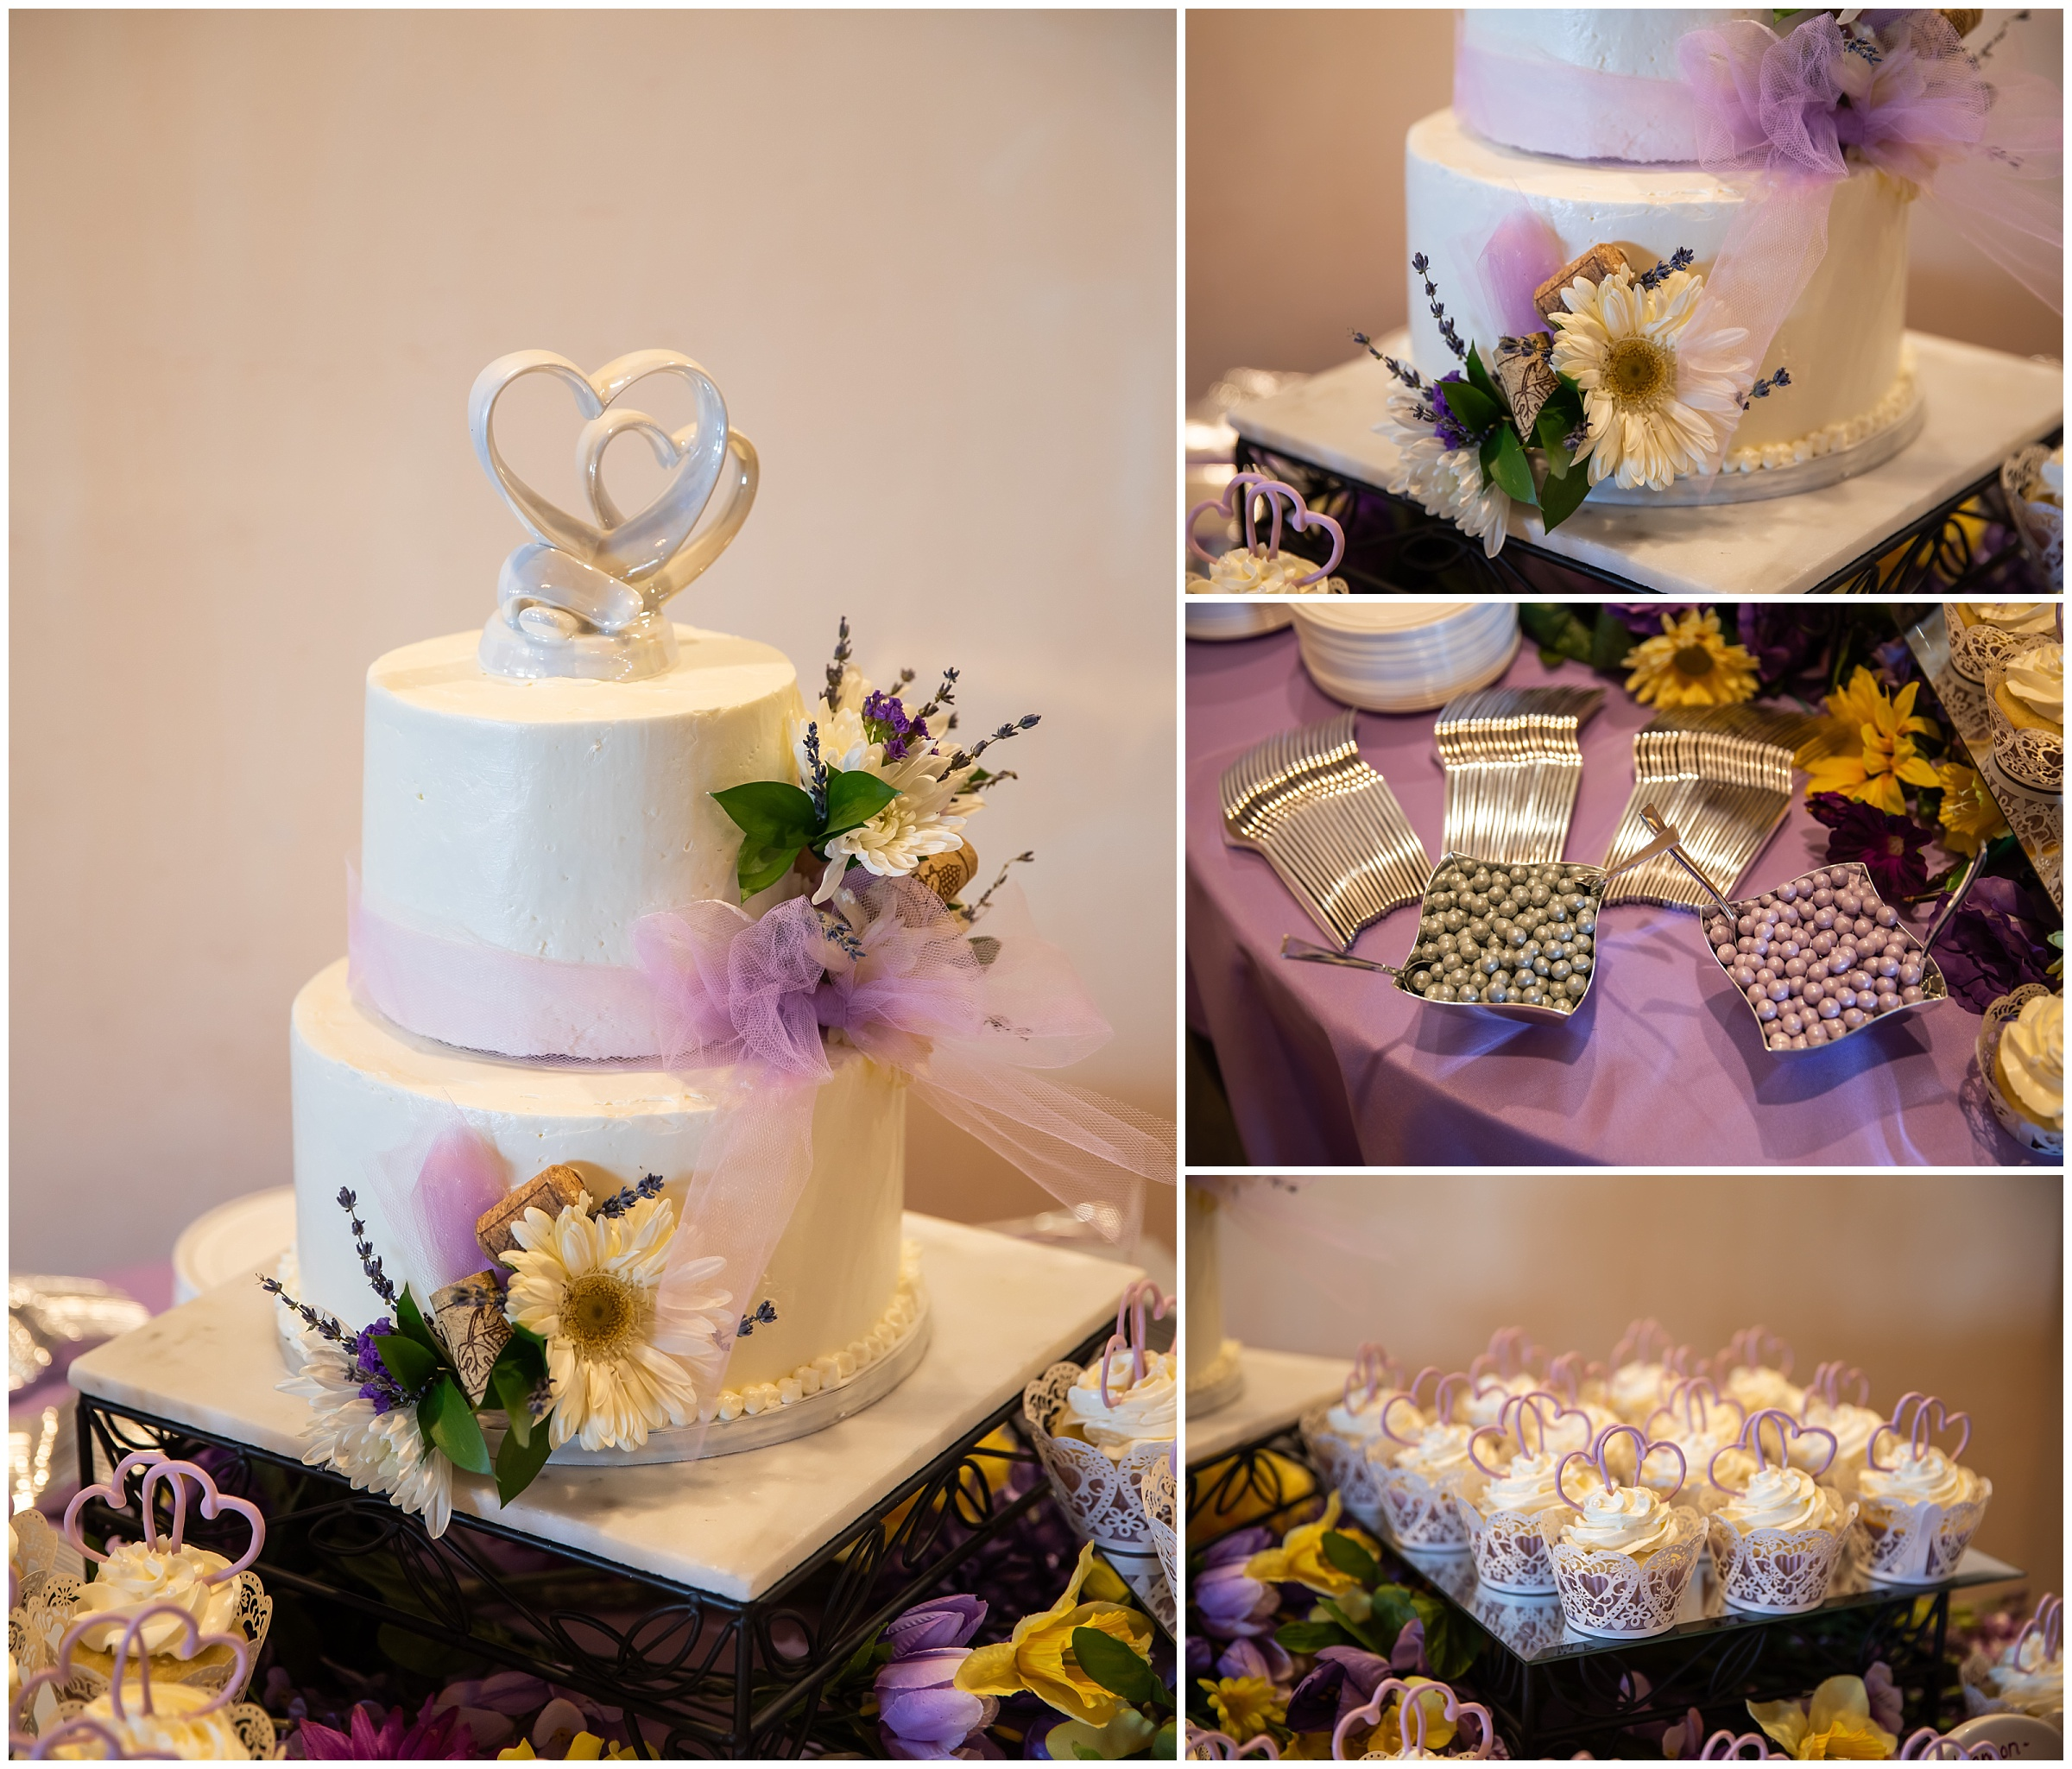 The cake and deserts were made by  Sweet by Design .